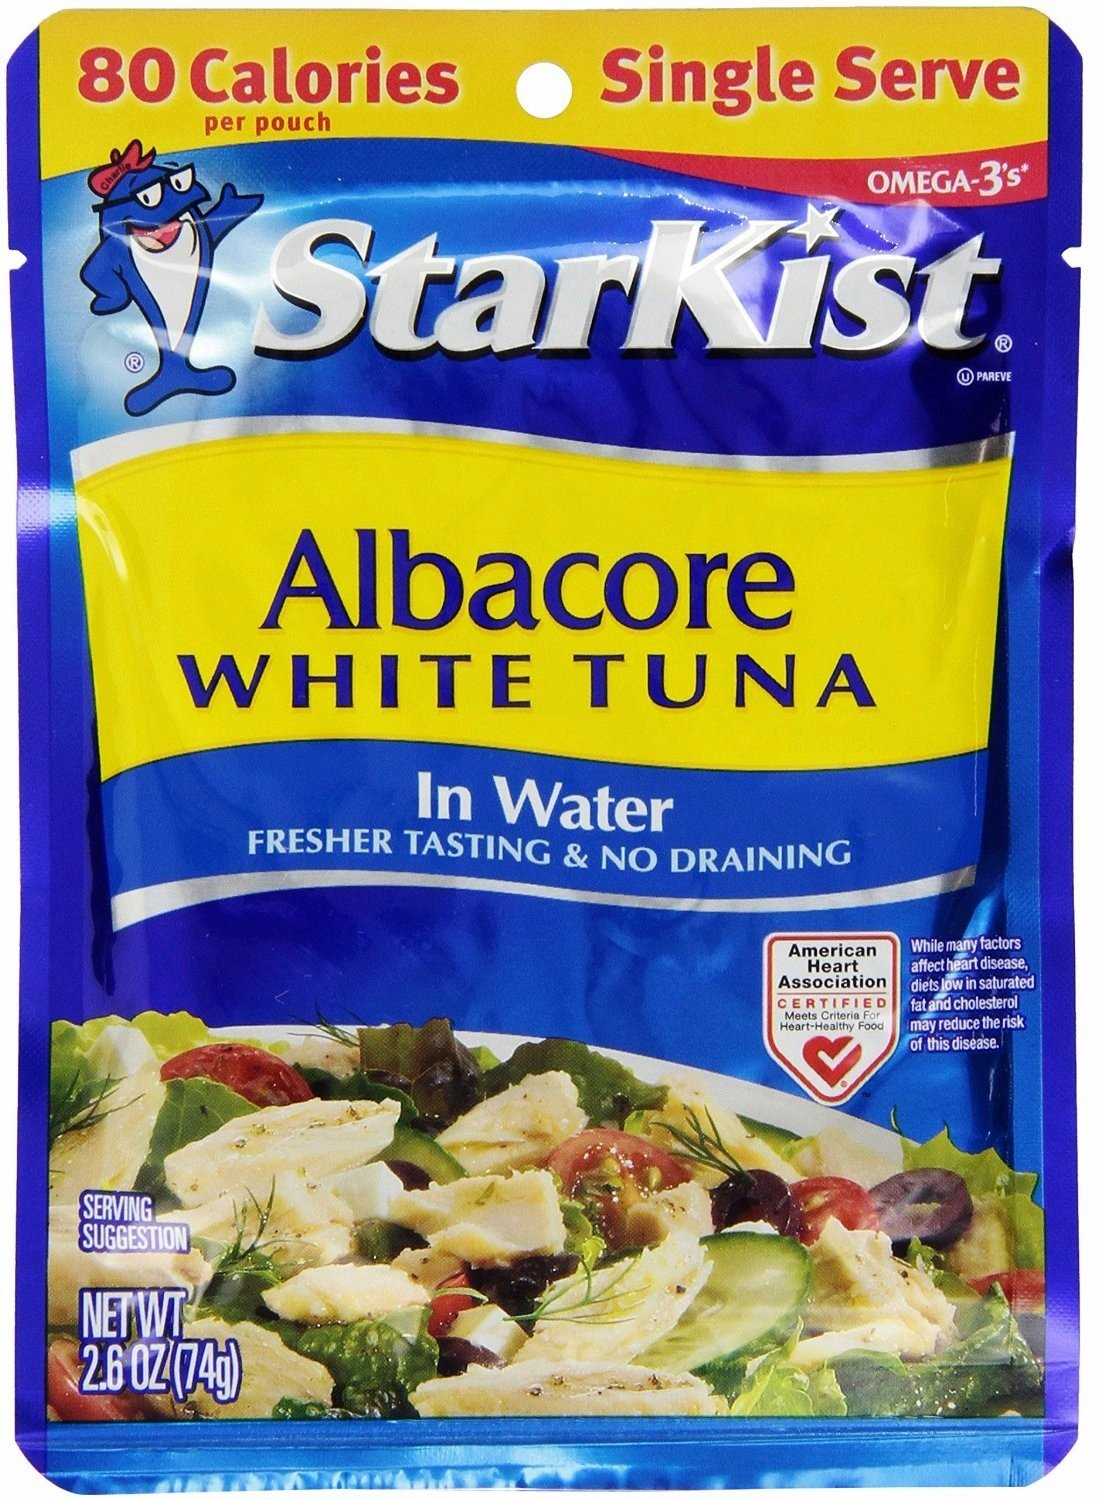 StarKist Albacore White Tuna in Water, 2.6-Ounce Pouch (Pack of 4)